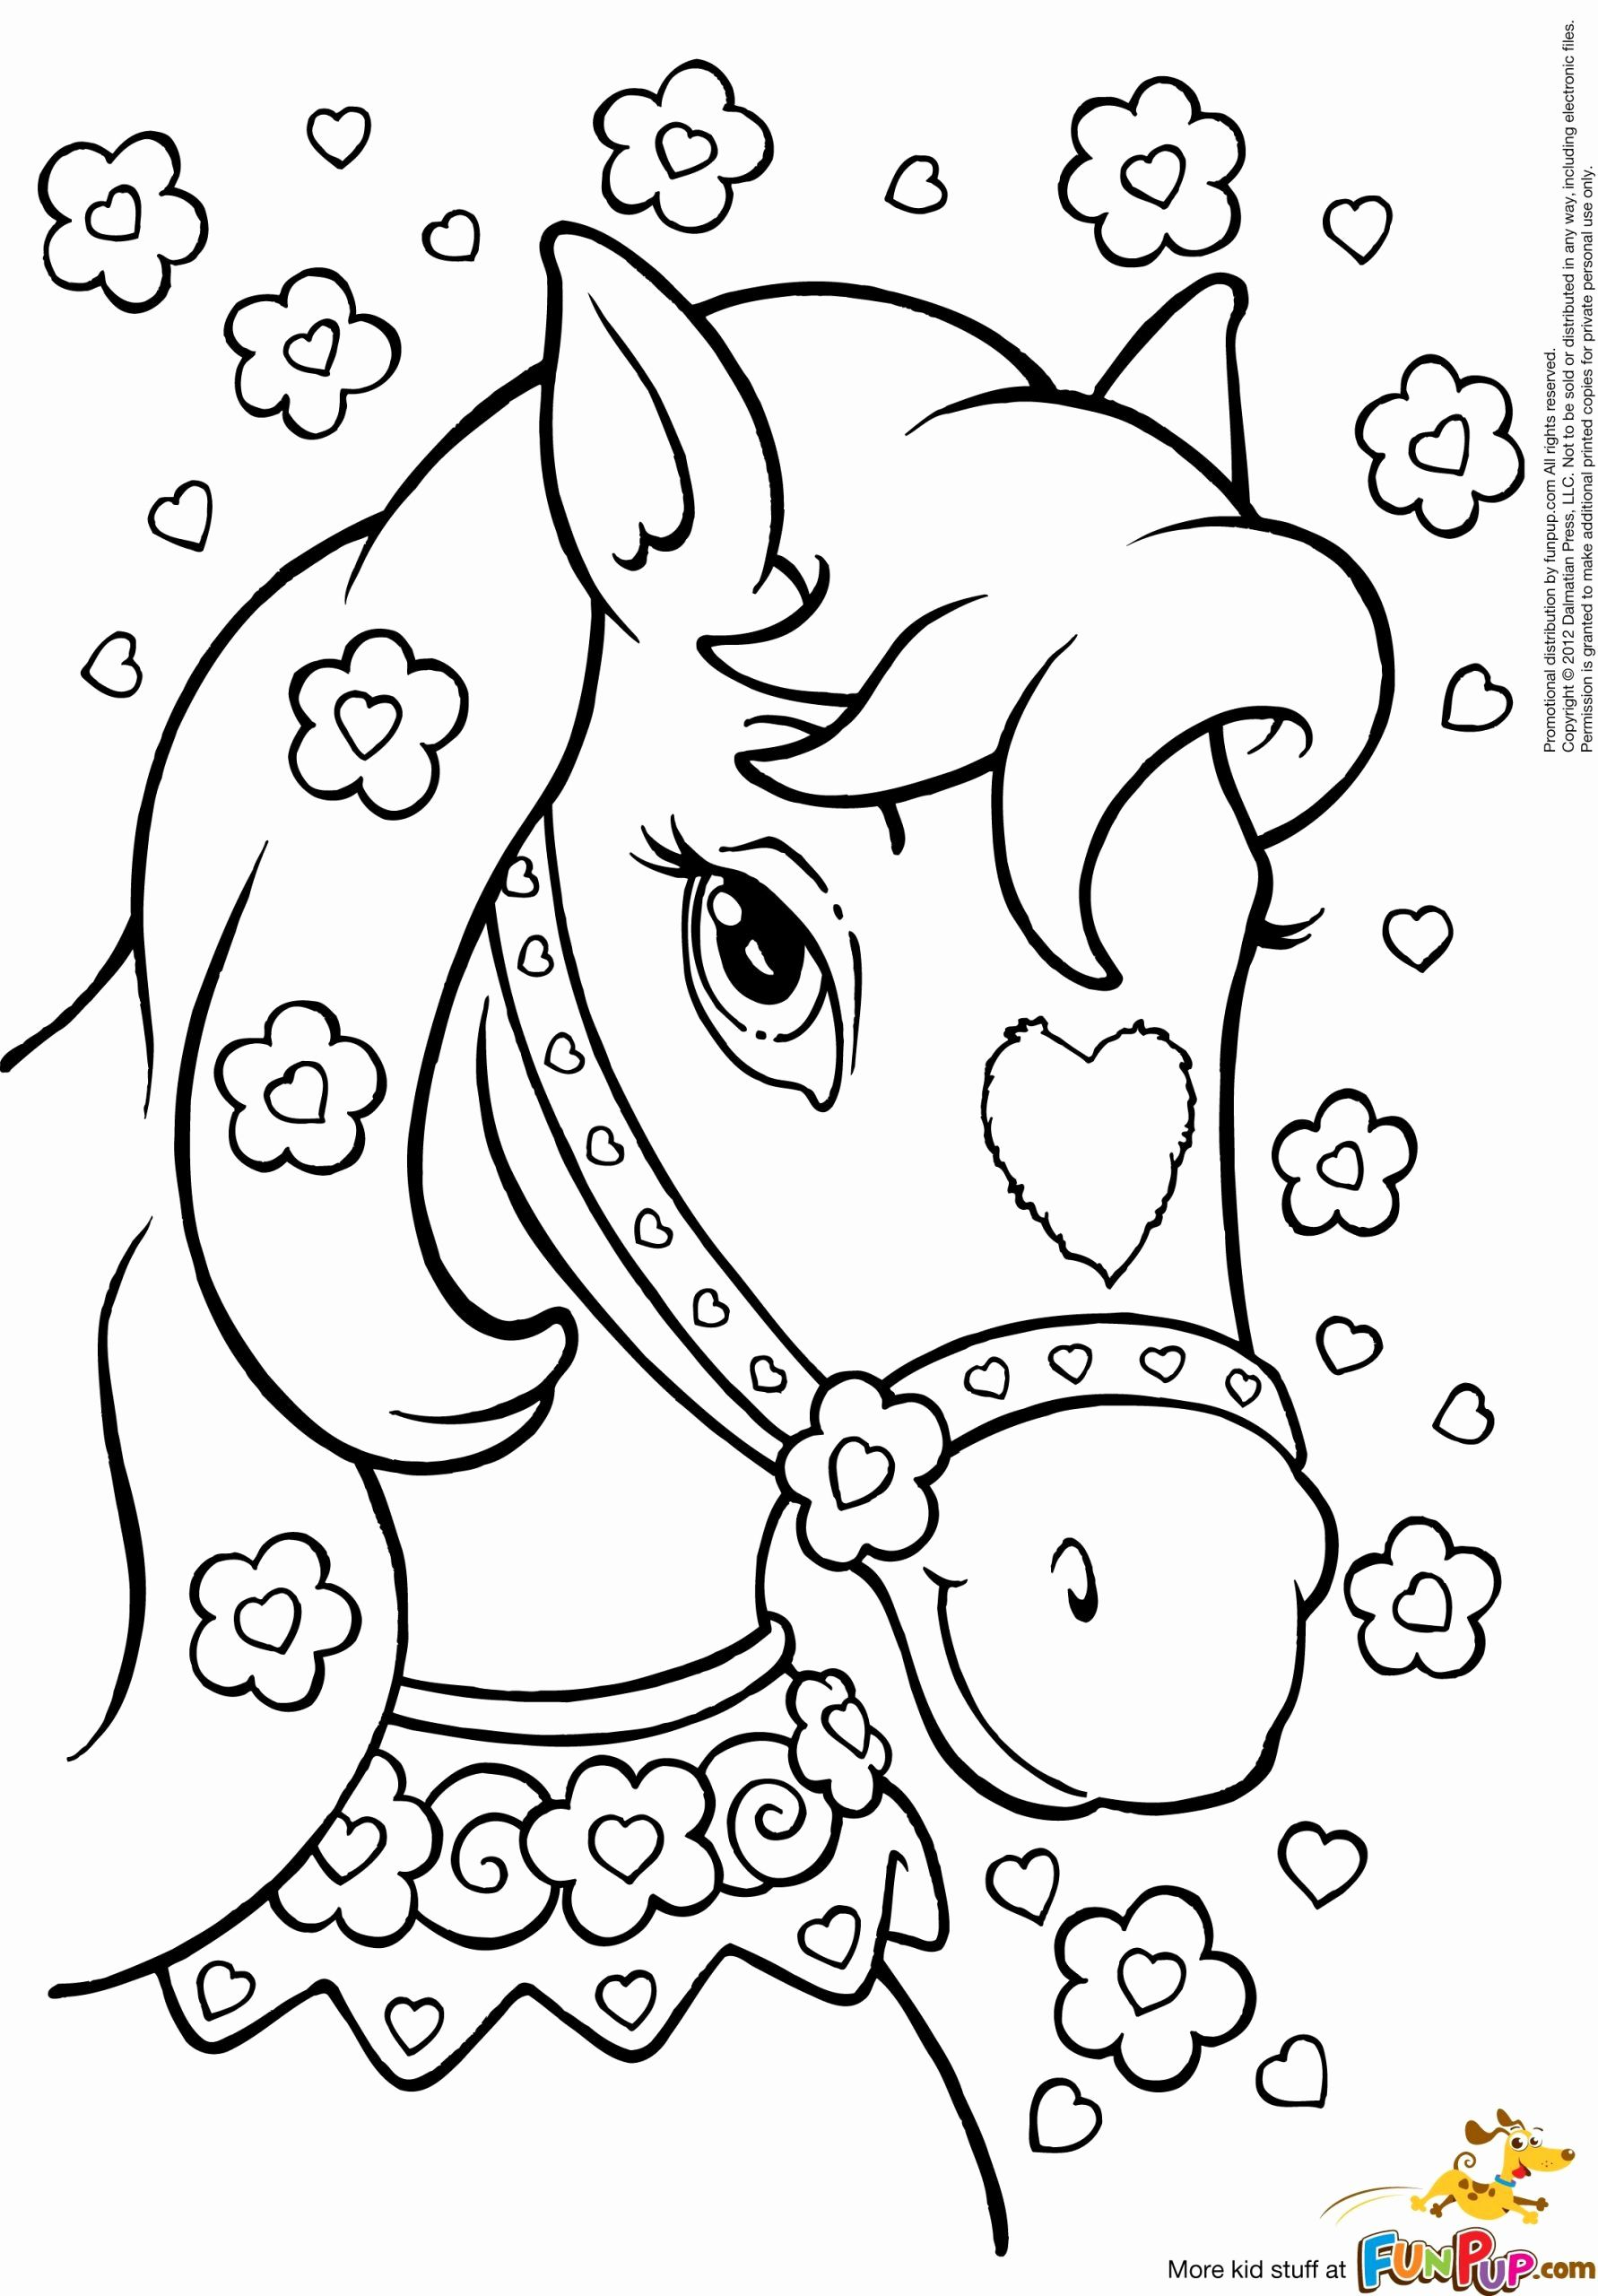 Pin On Horse Coloring Pages For Kids